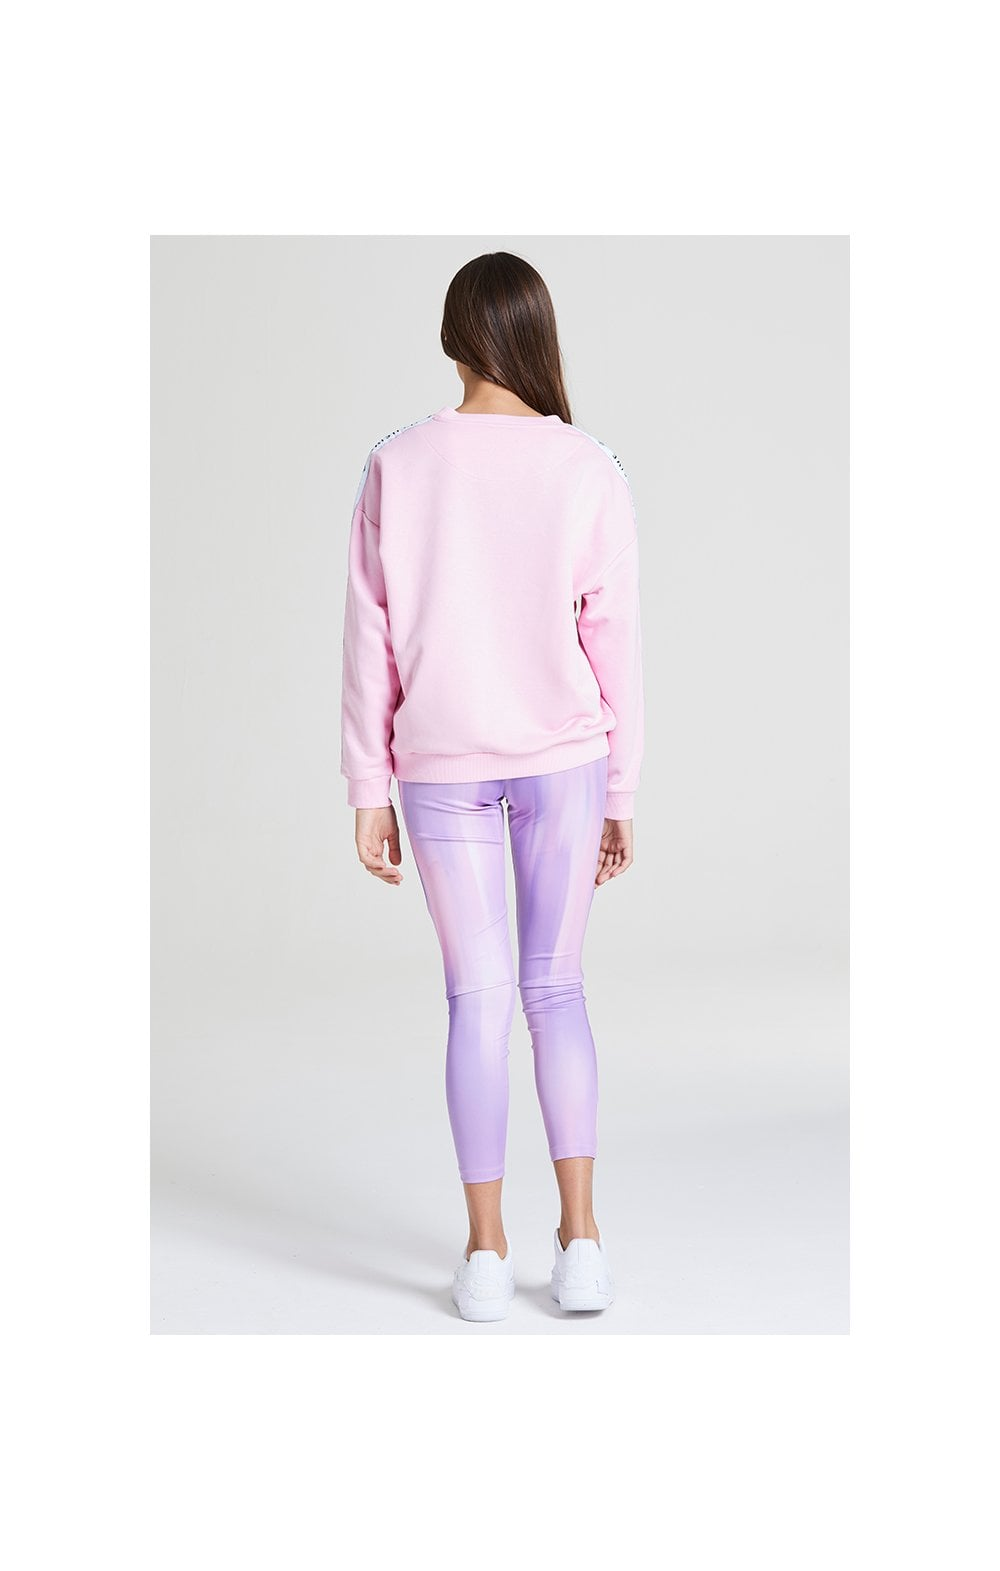 Illusive London Crew Neck Sweater - Pink (5)